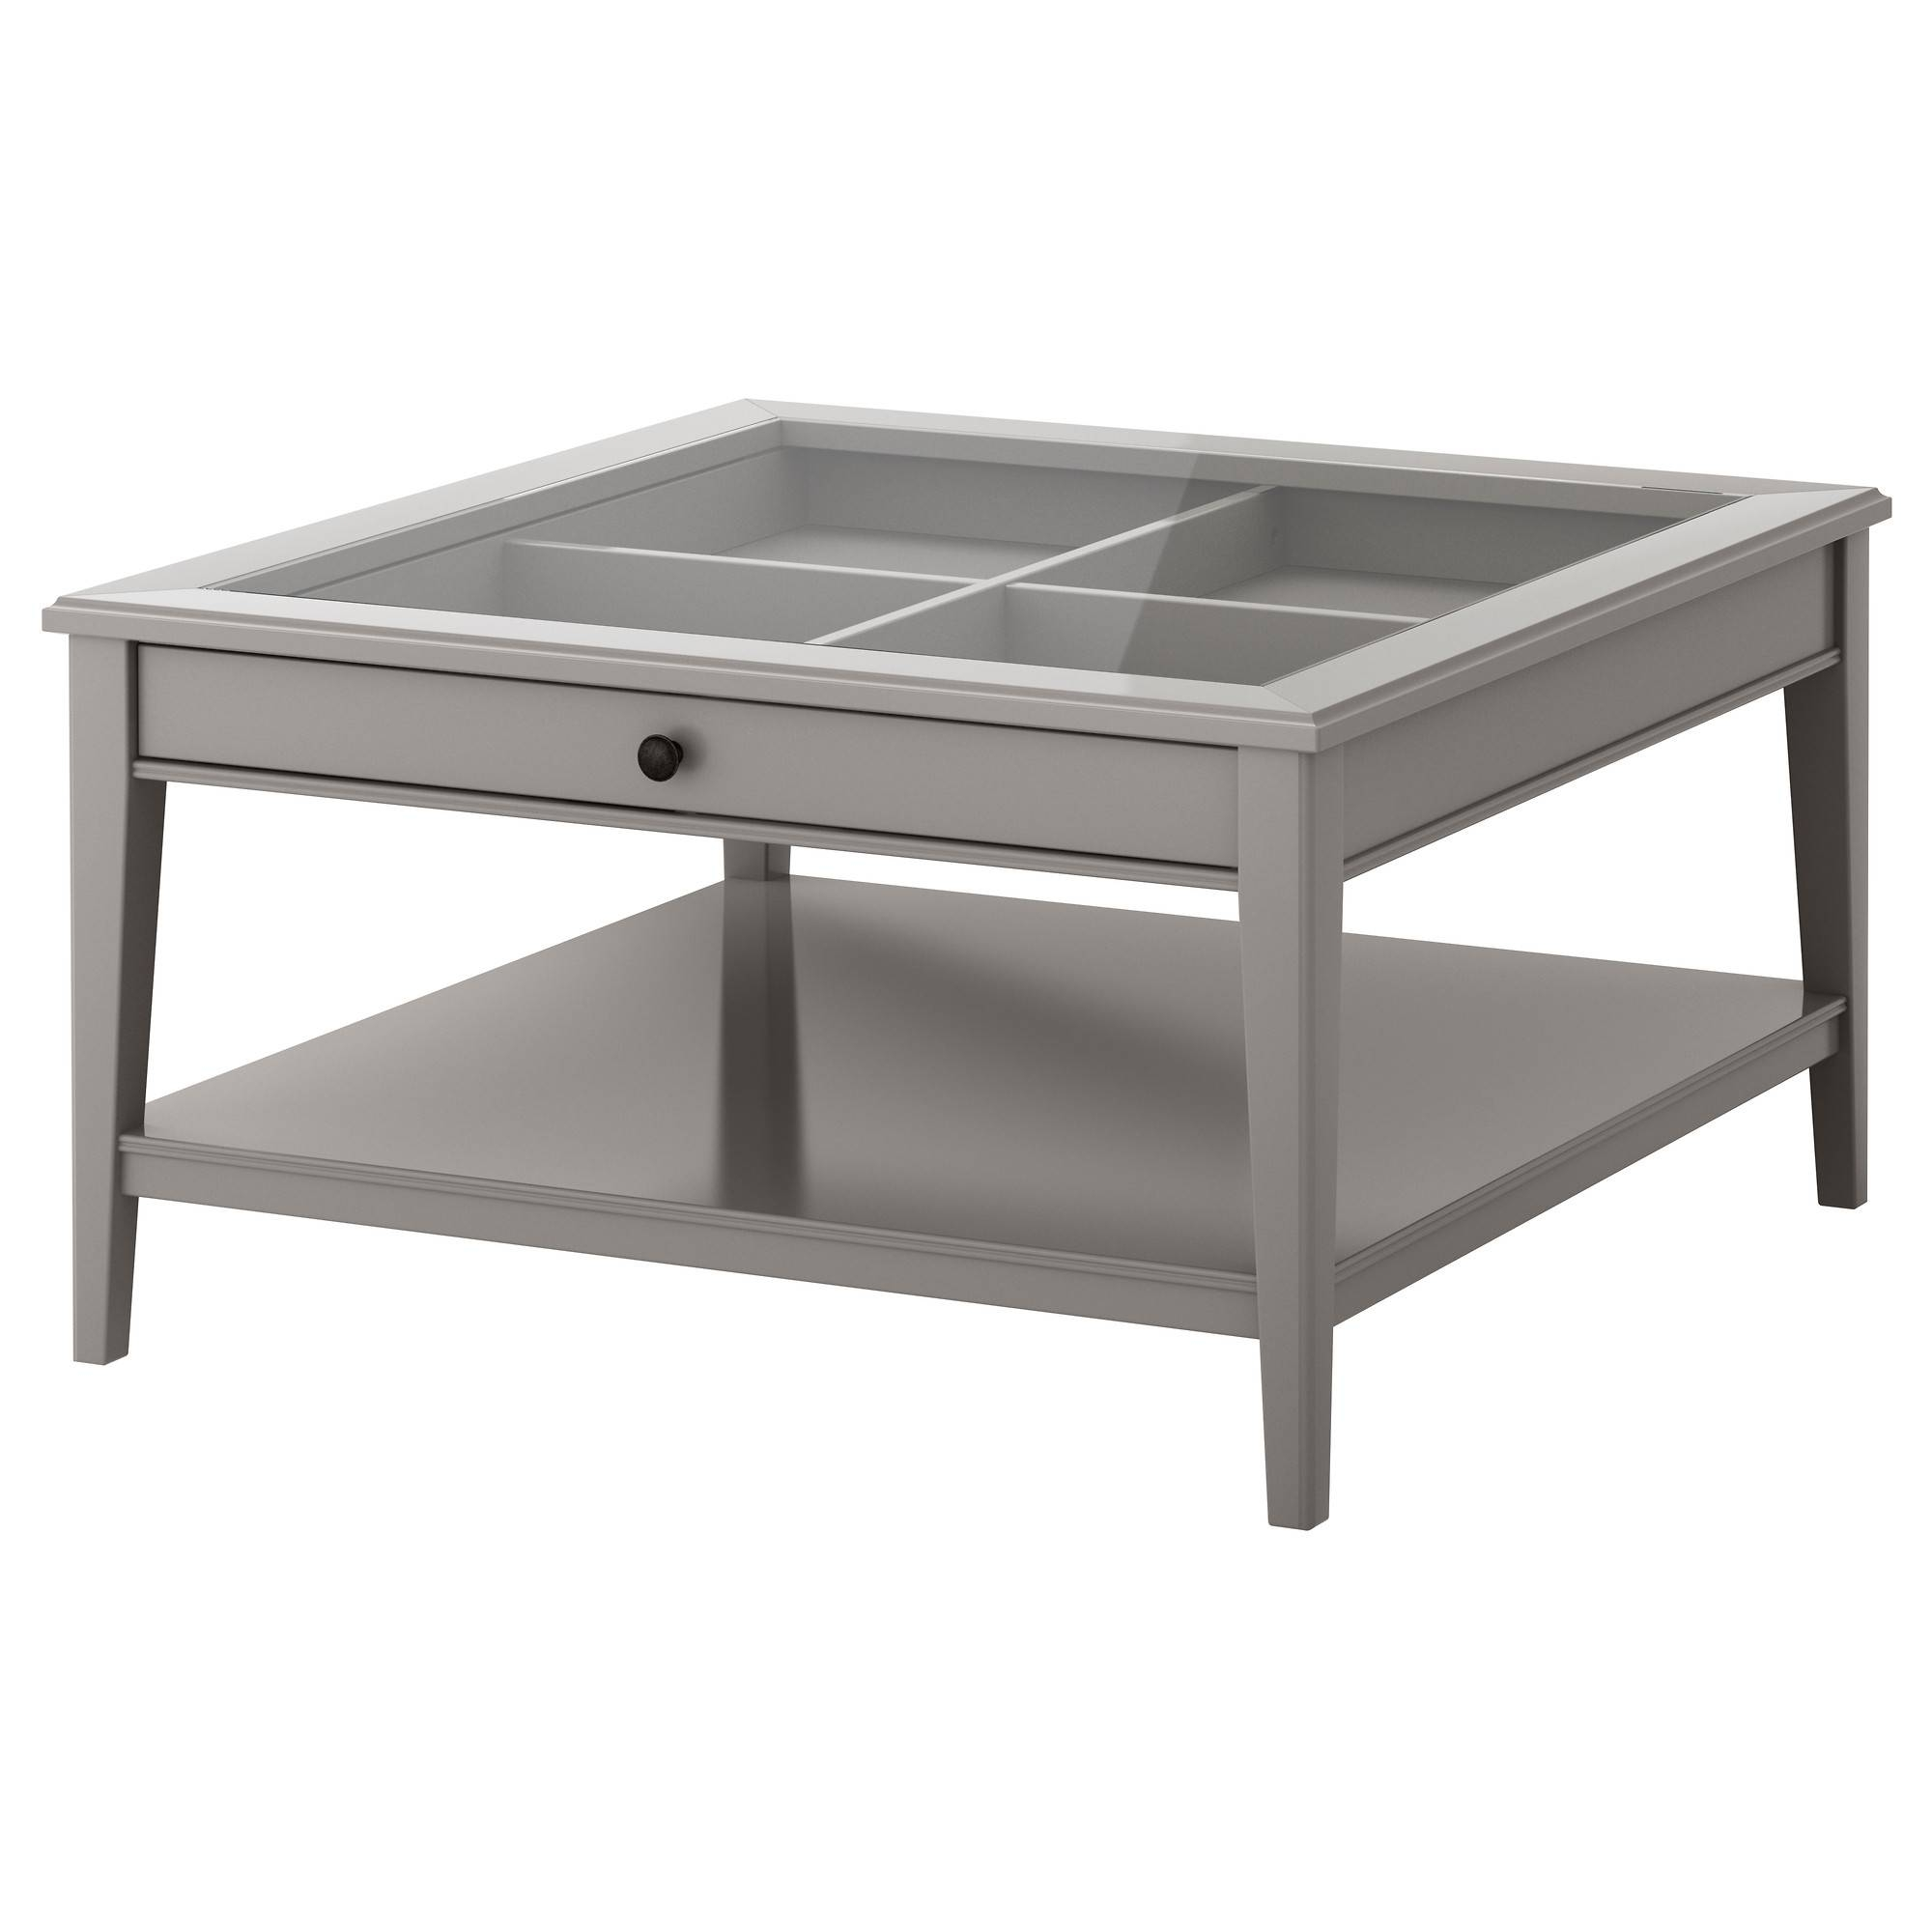 Liatorp Coffee Table - Gray/glass - Ikea intended for Grey Coffee Tables (Image 24 of 30)